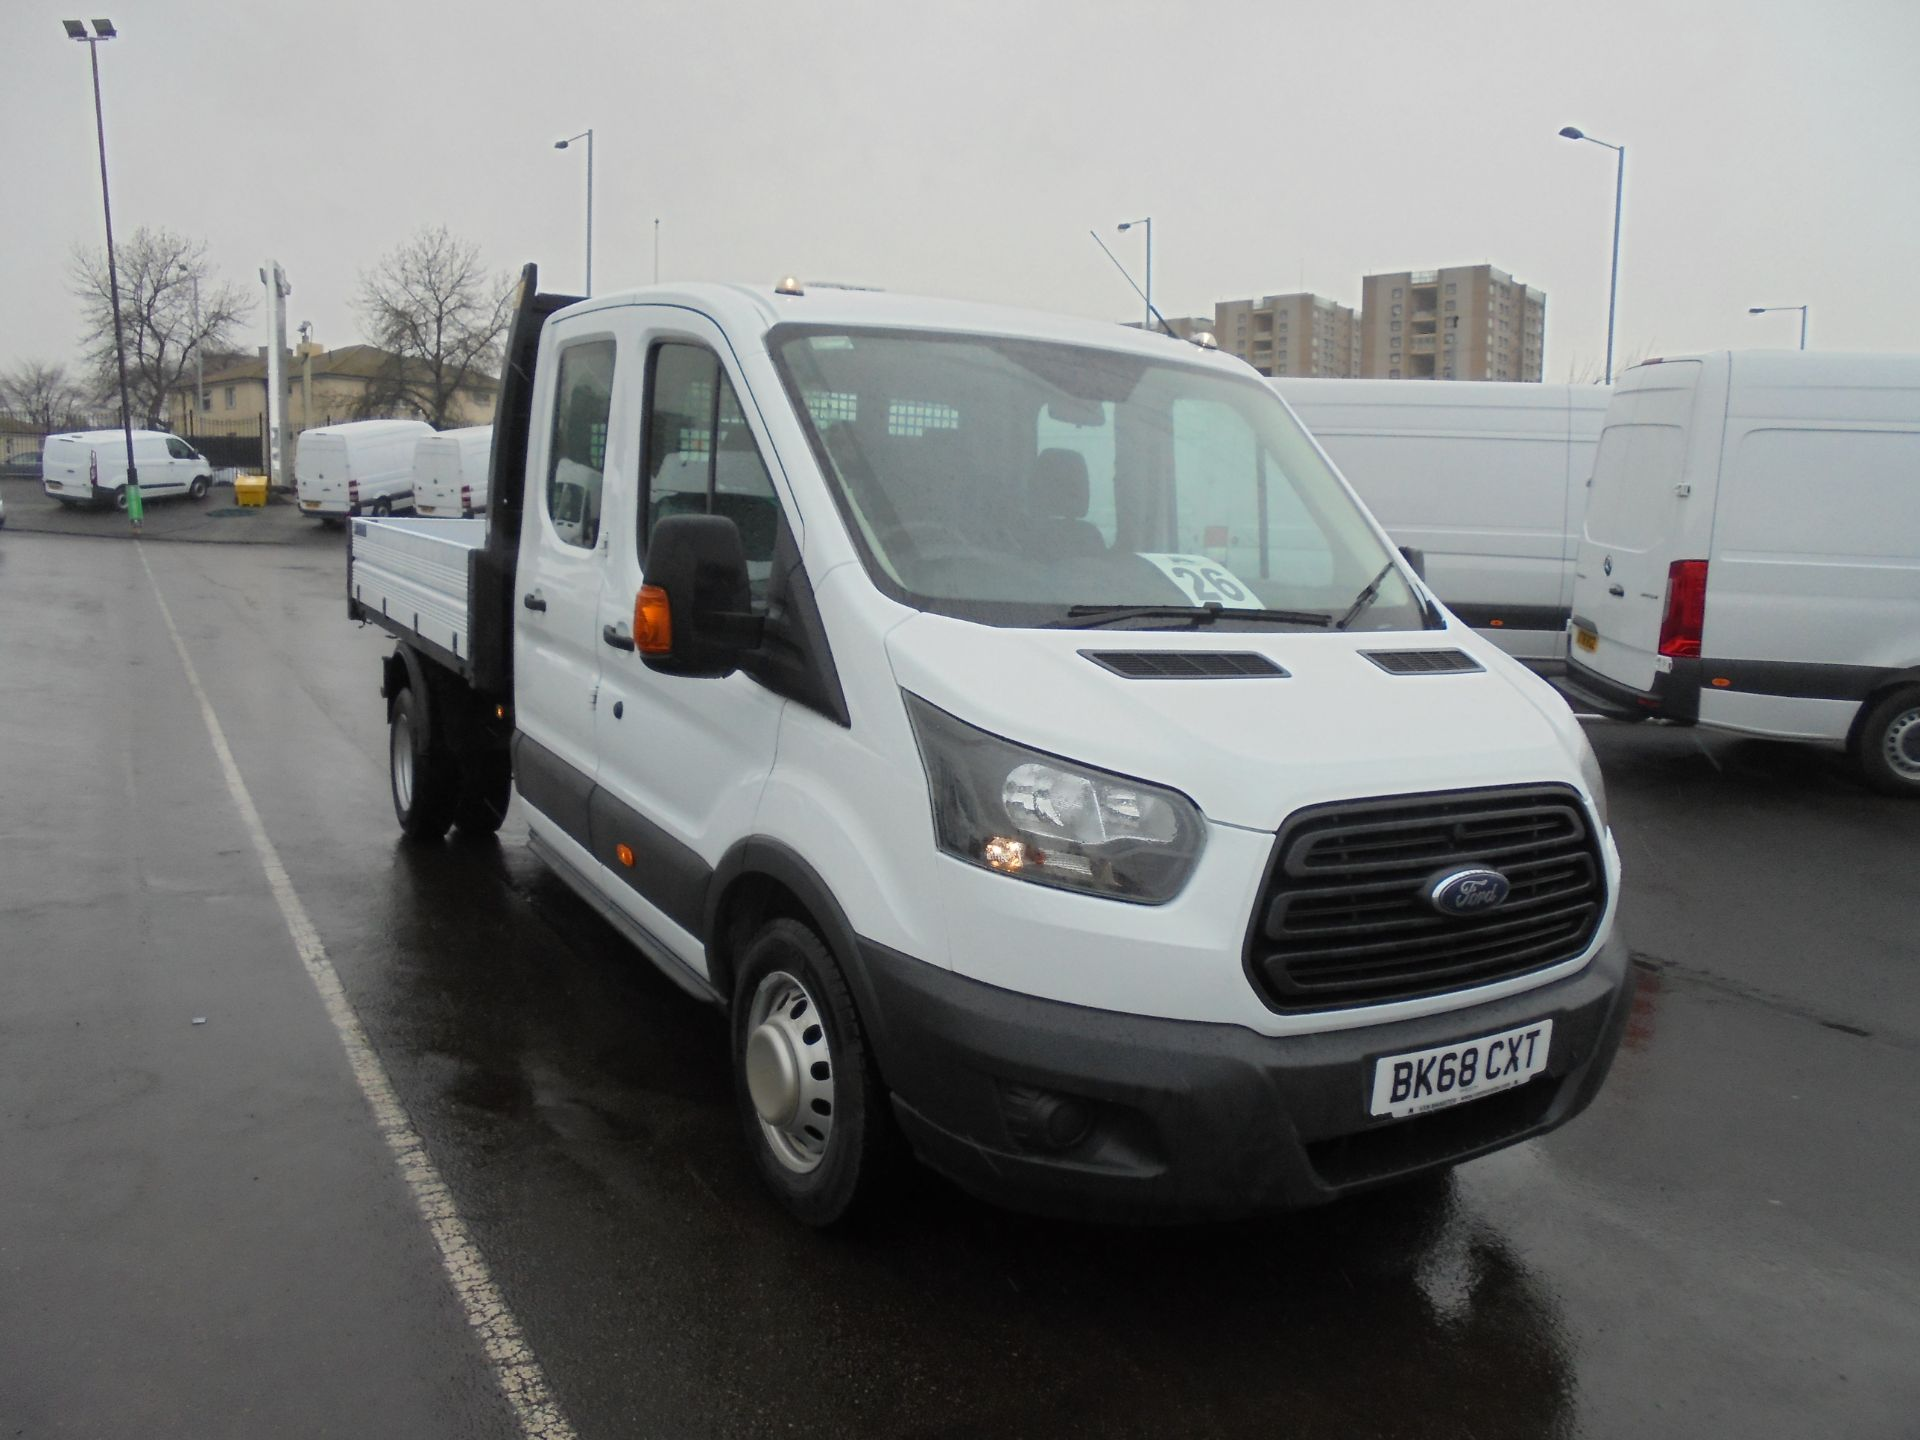 2018 Ford Transit 2.0 Tdci 130Ps 'One Stop' D/Cab Tipper [1 Way] (BK68CXT)